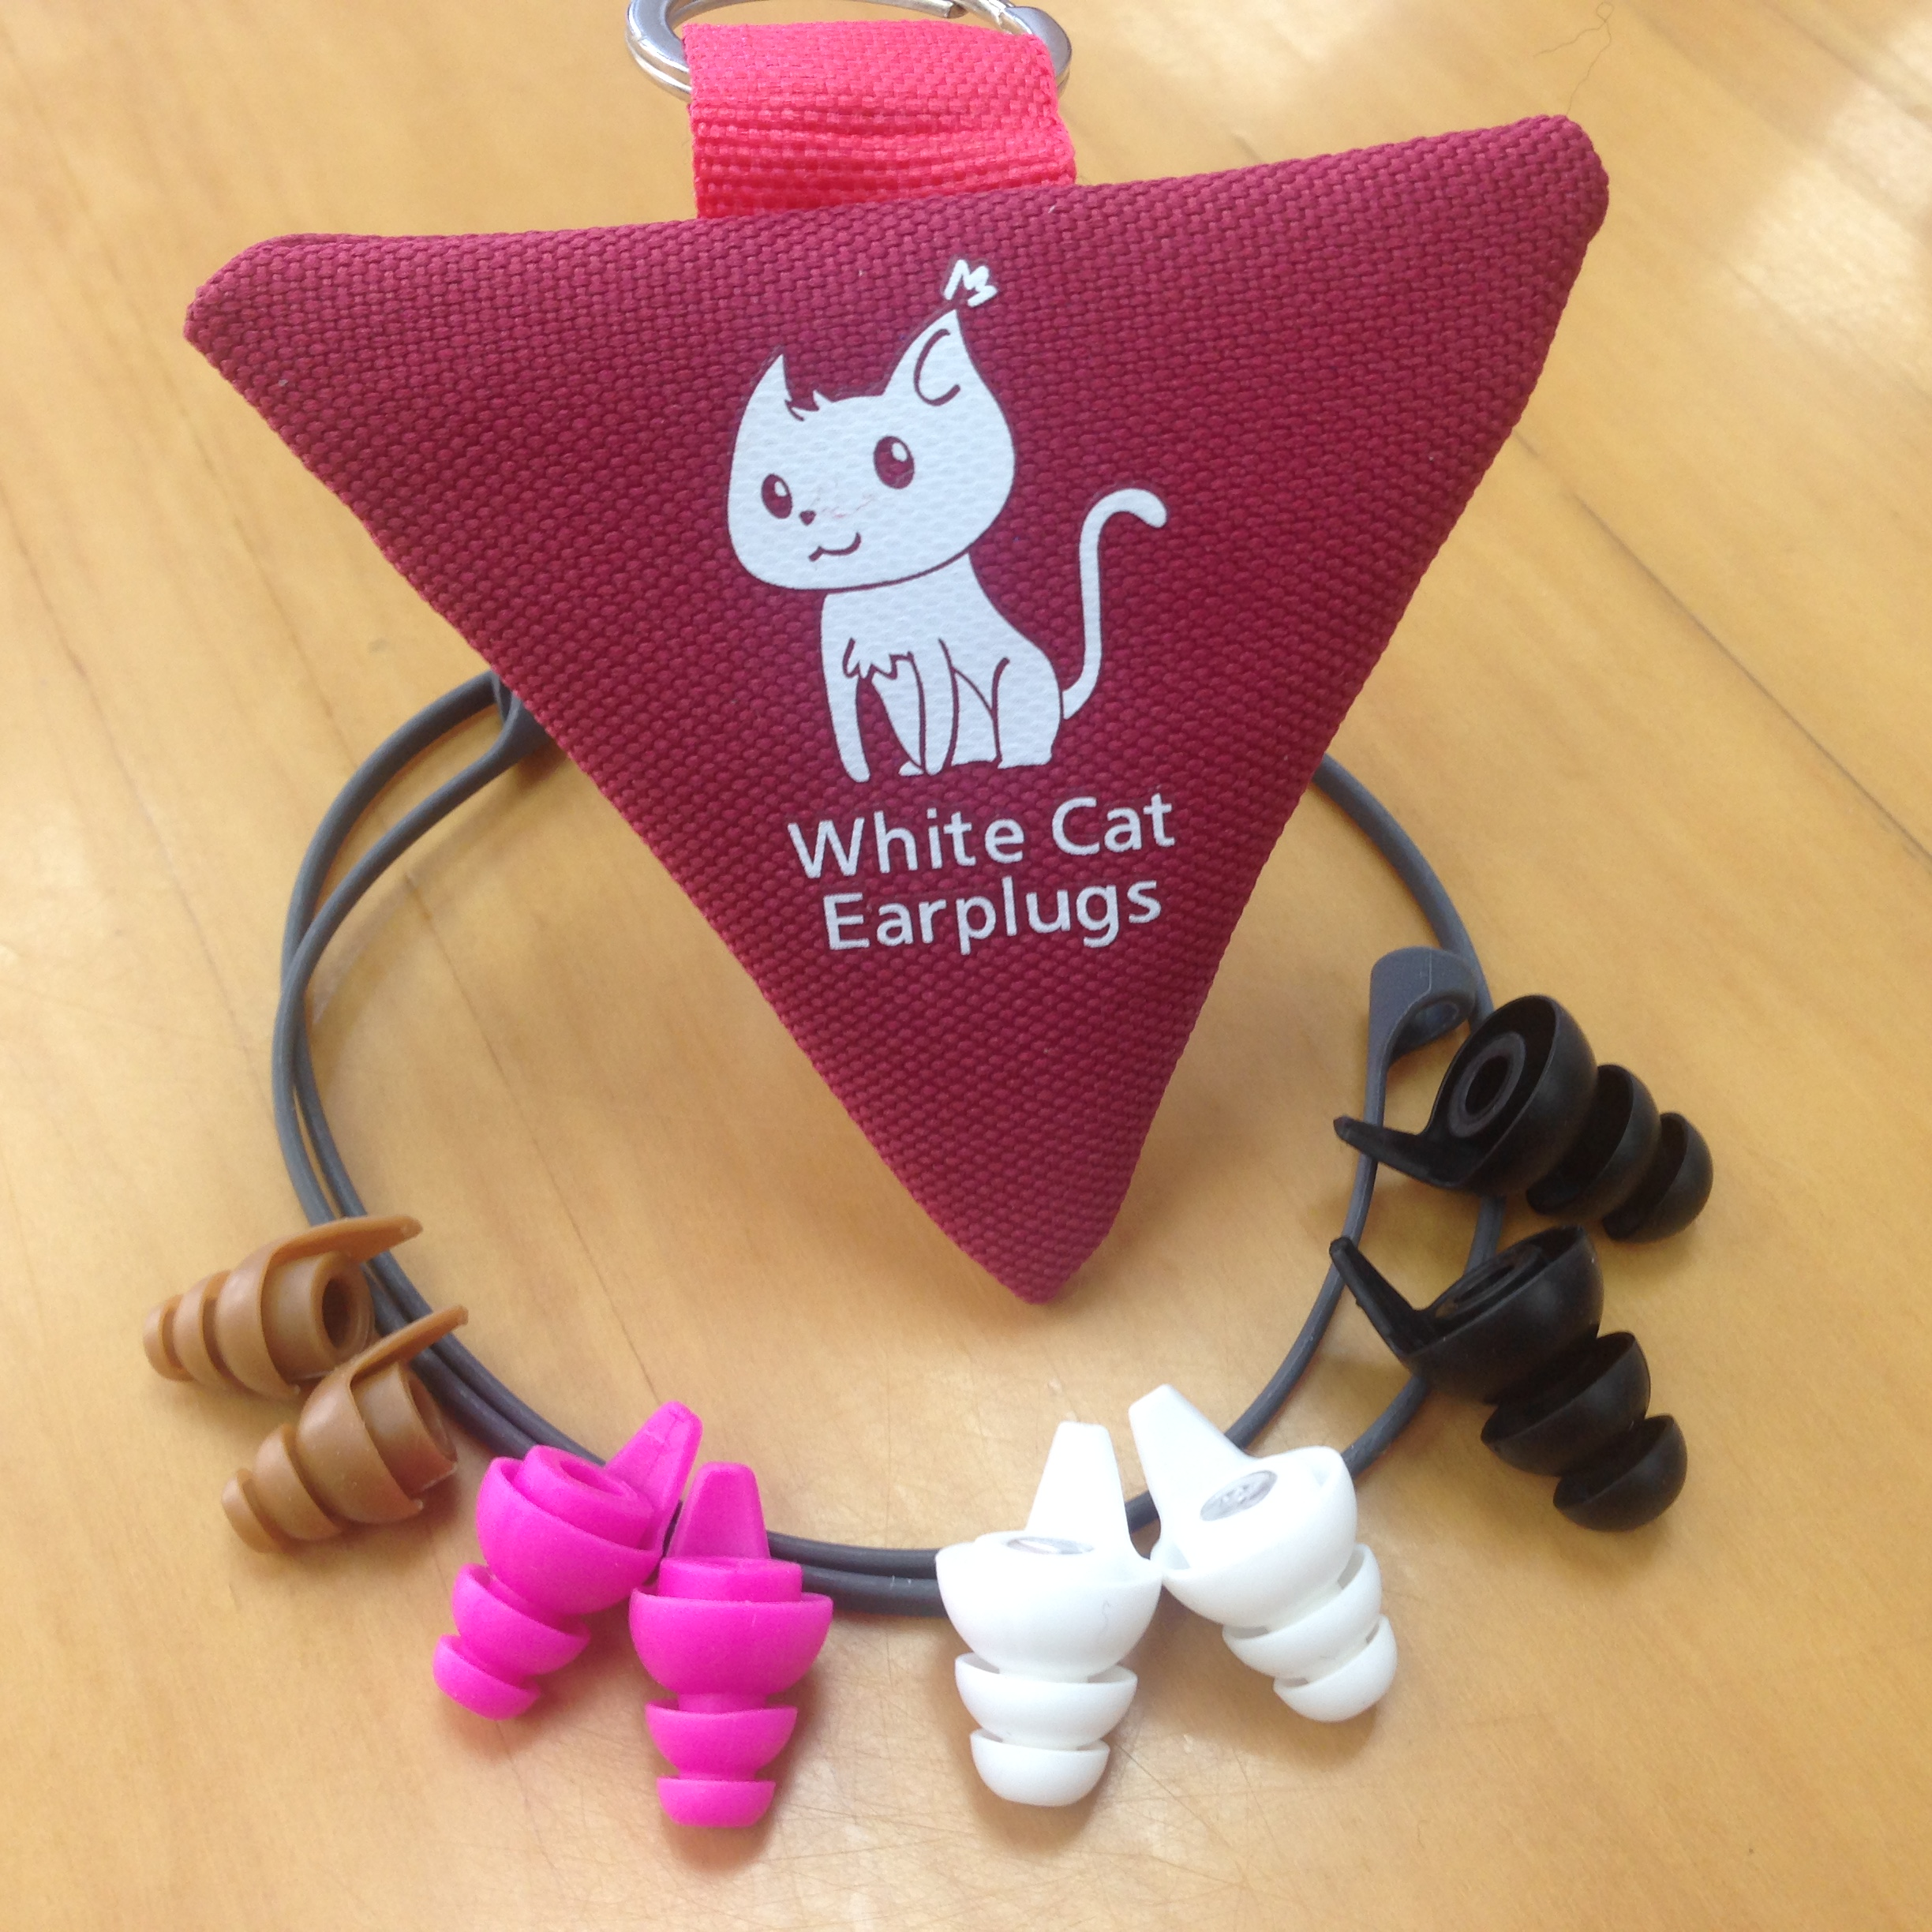 White Cat Living Earplugs (Set)